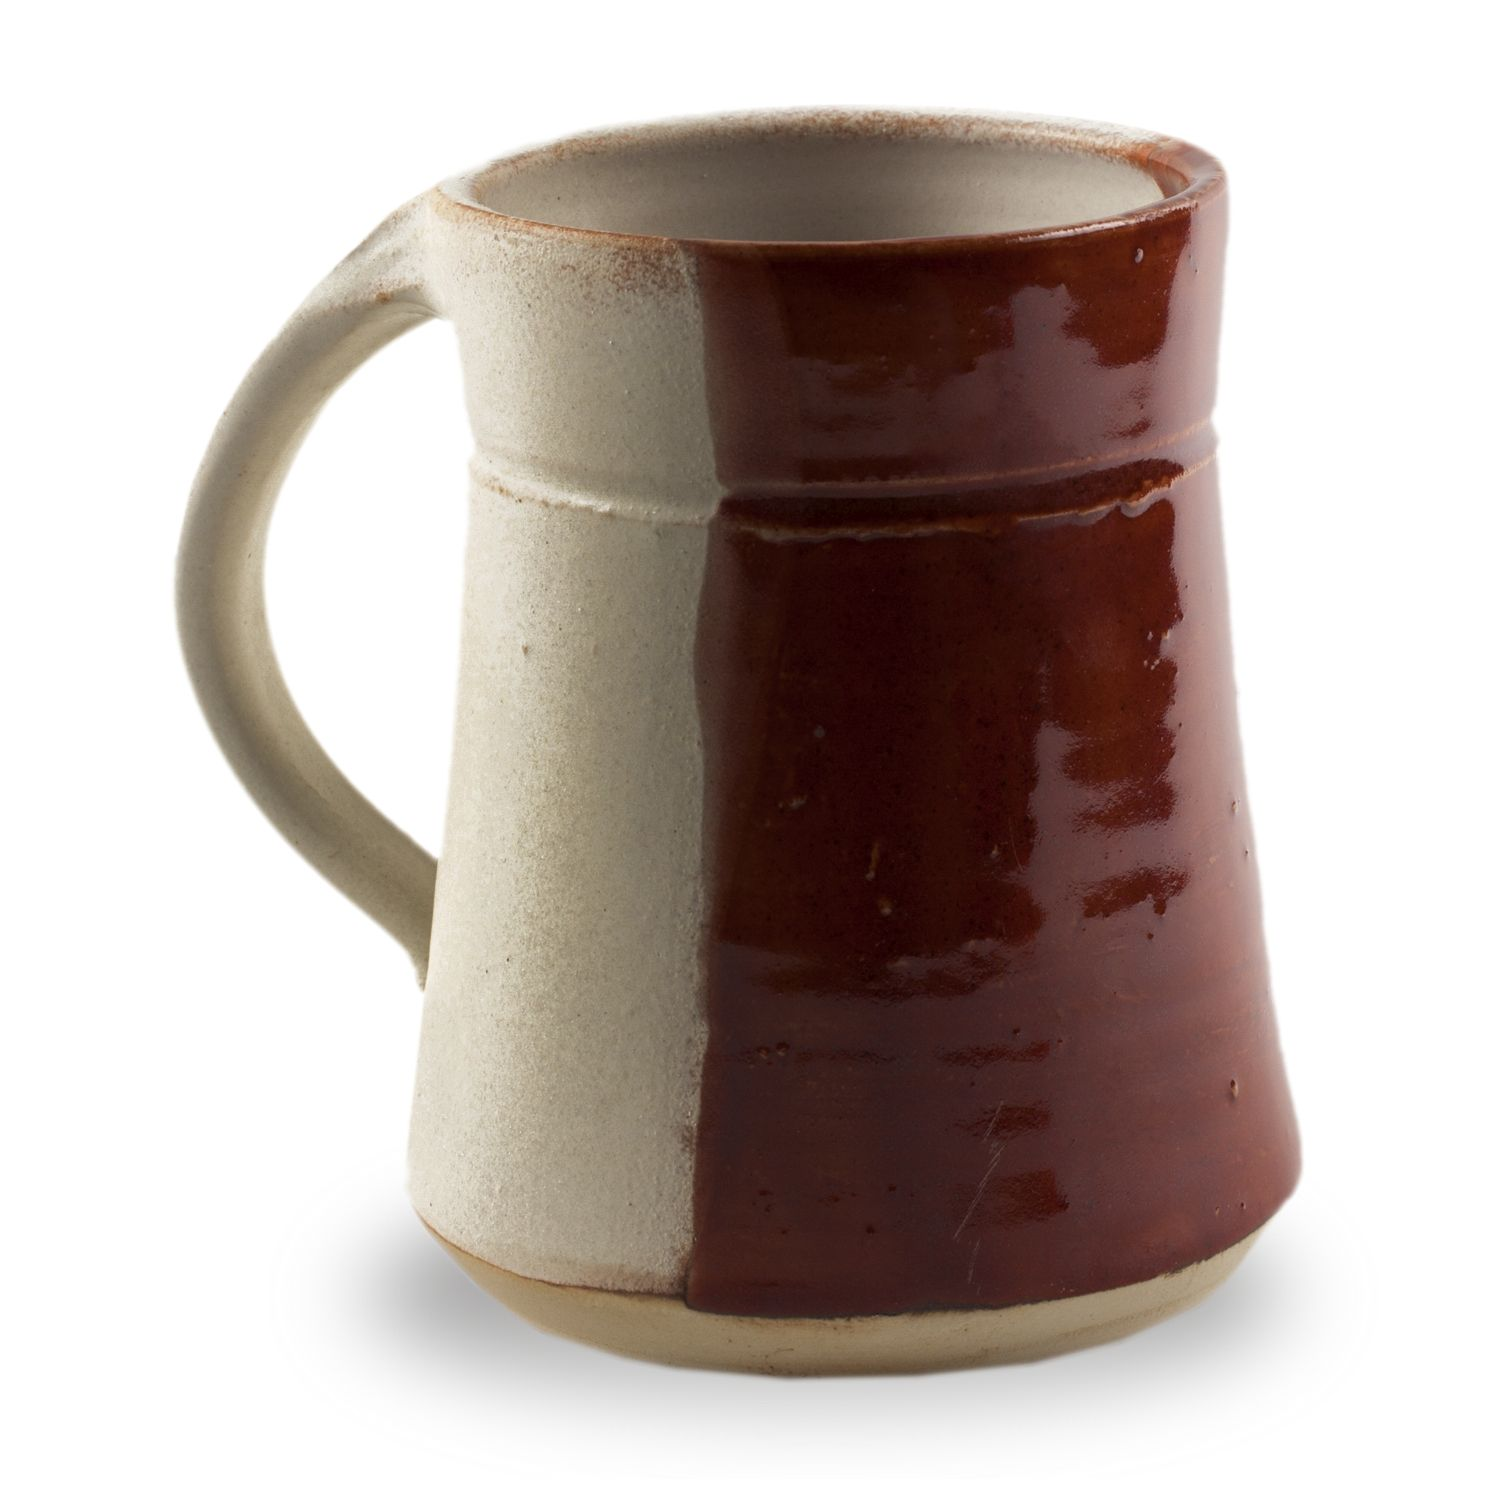 Plain Mug - Half and Half Colors